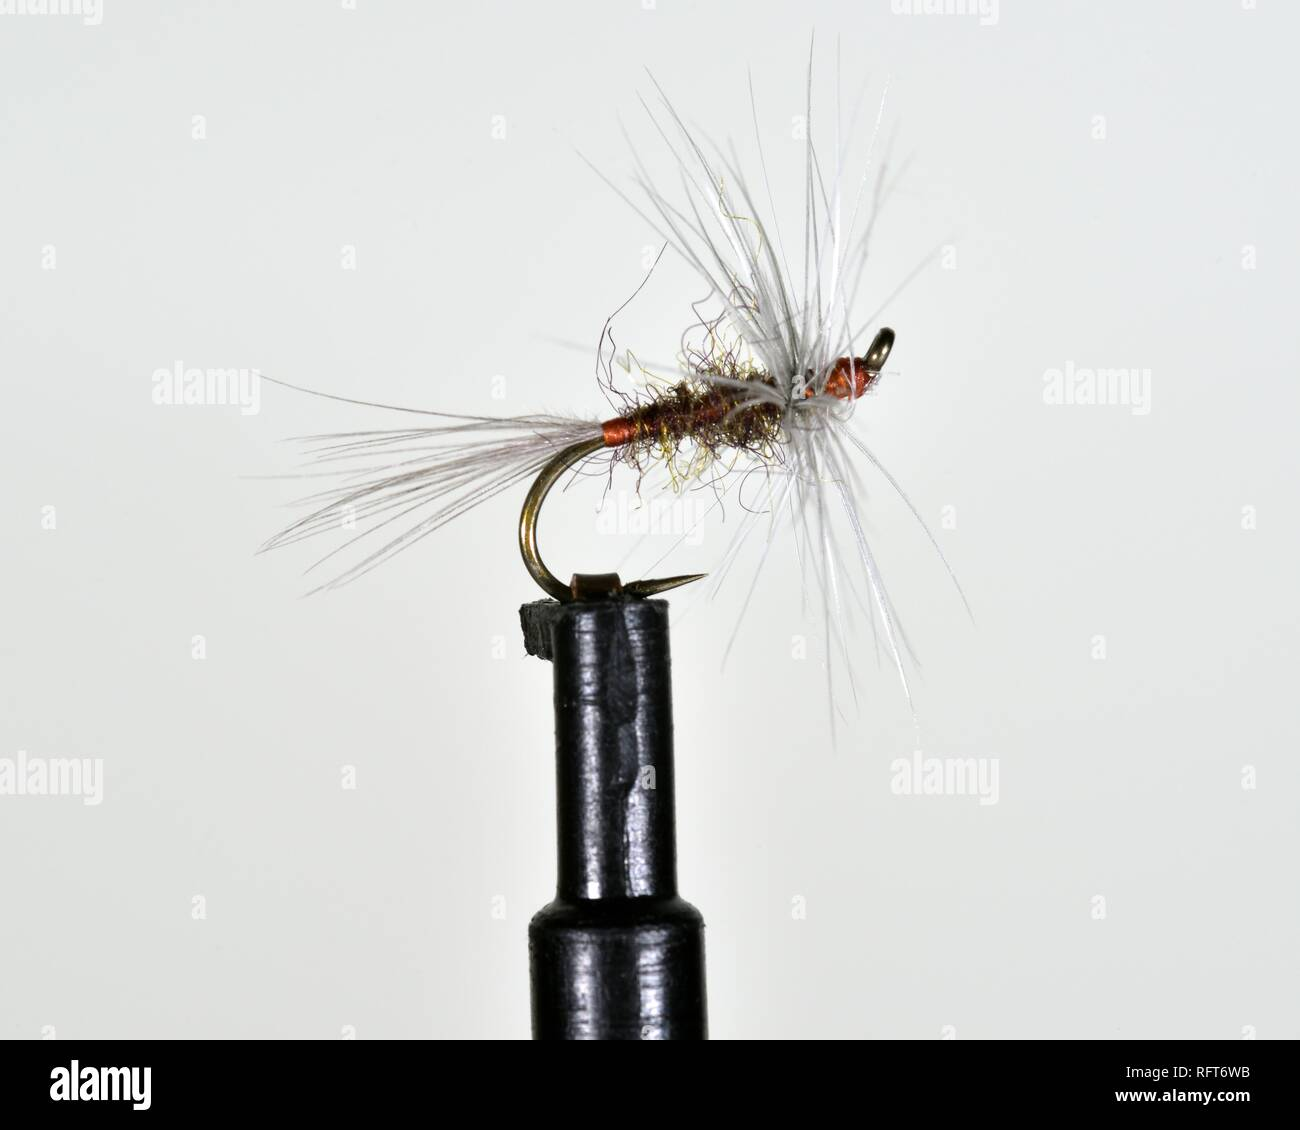 Barbless Hooks,Trout Dry Flies Blue Winged Olive Ducks Dun Fly Fishing,